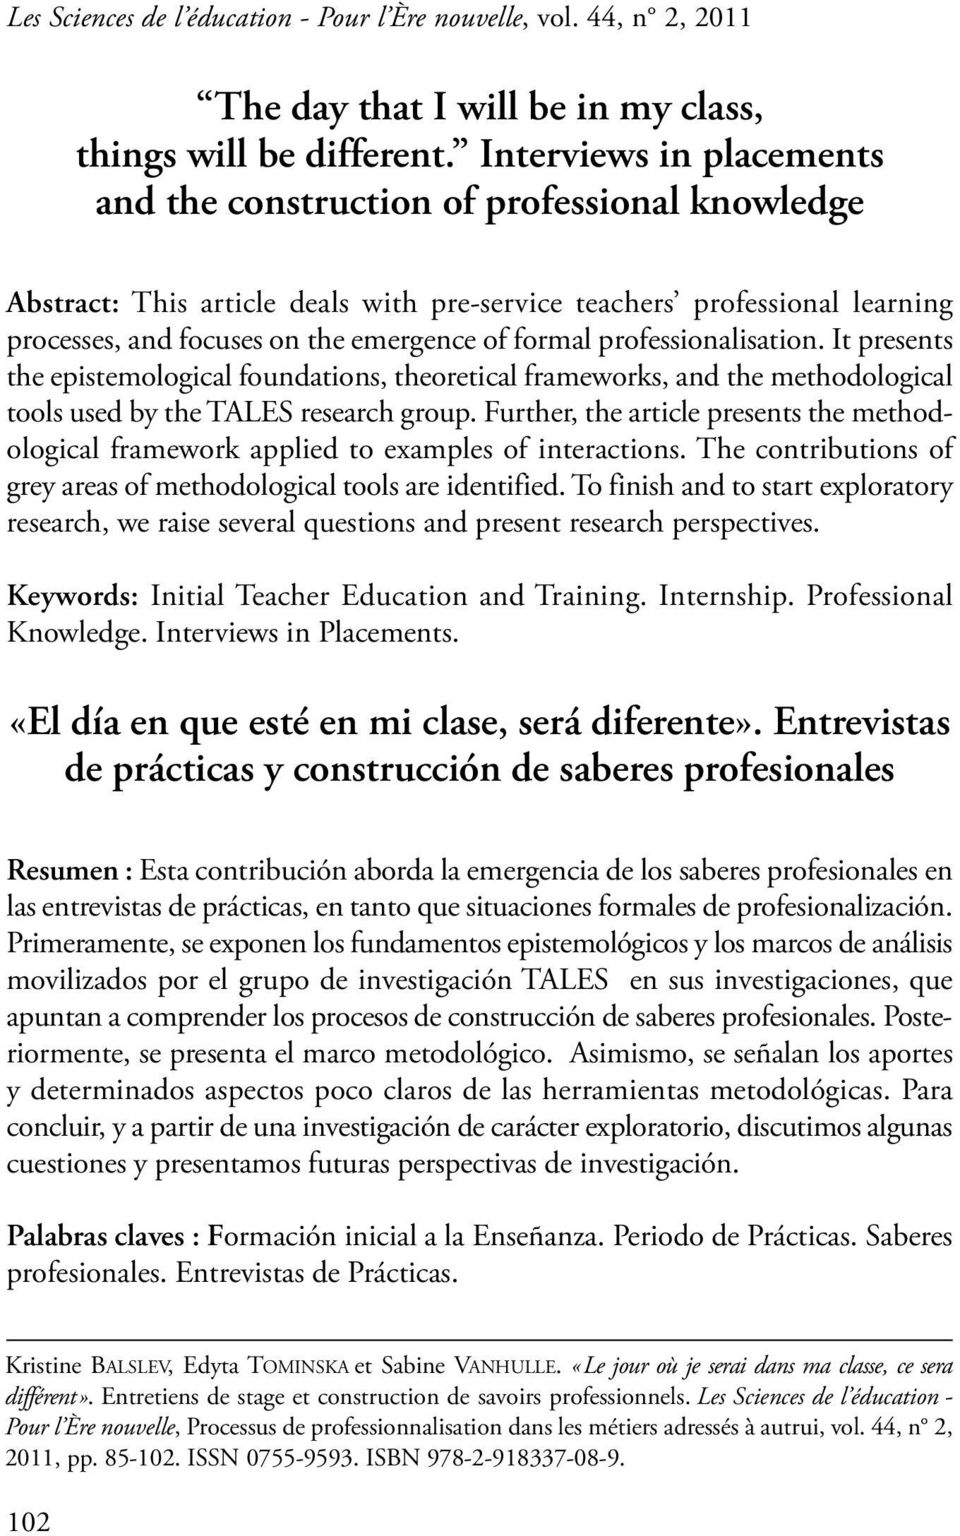 professionalisation. it presents the epistemological foundations, theoretical frameworks, and the methodological tools used by the TAlES research group.